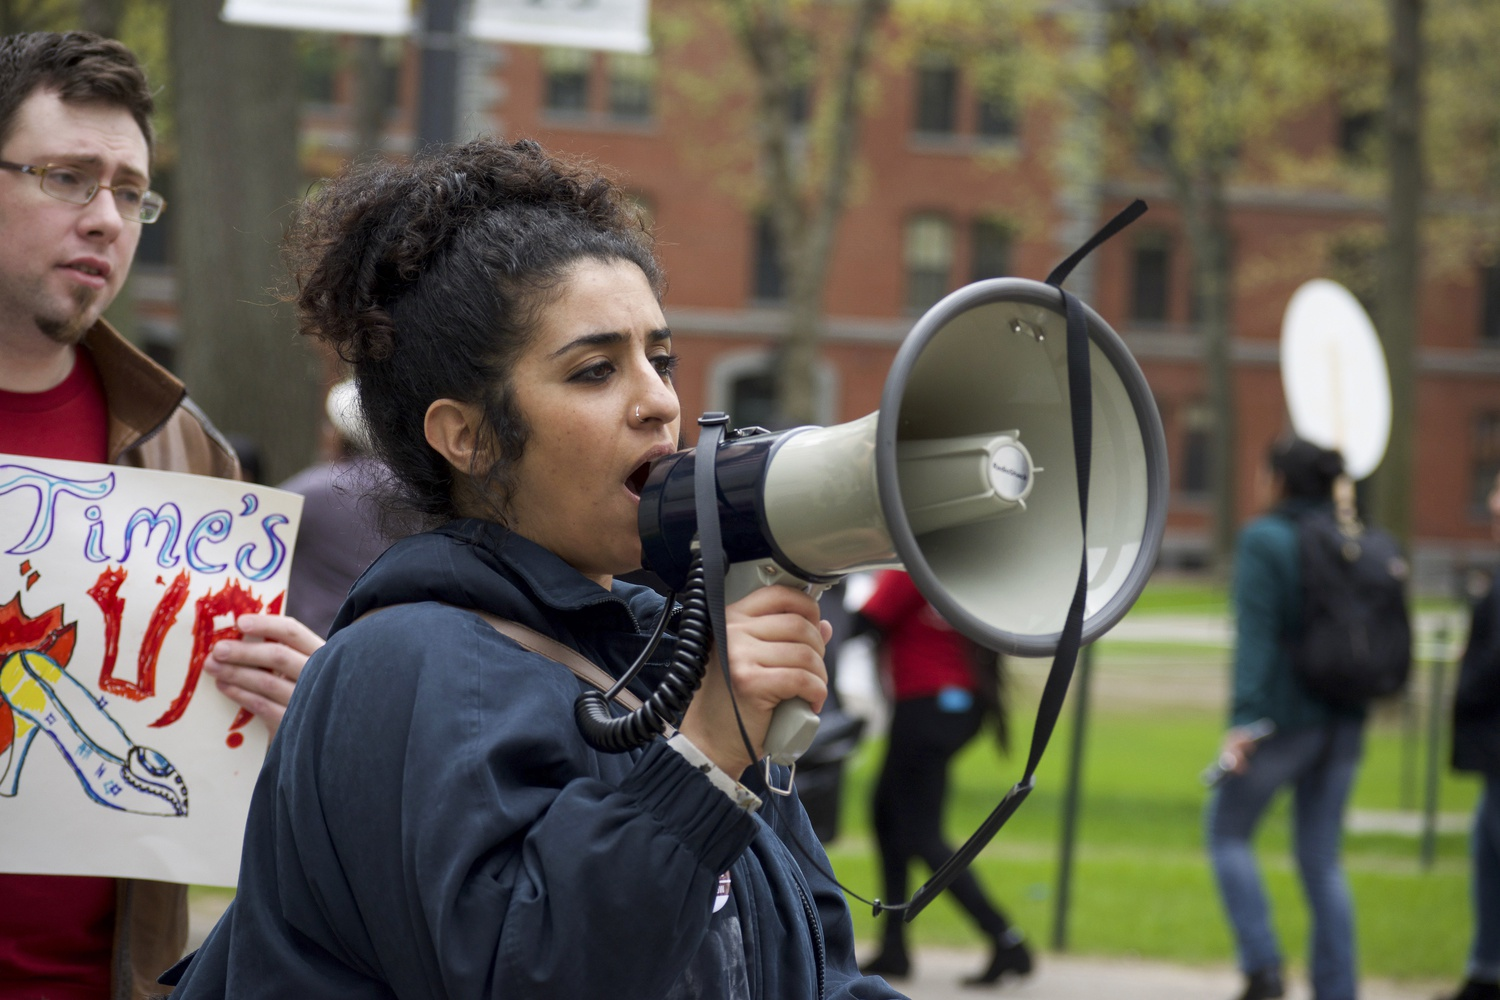 A protester speaks to the crowd as she leads the crowd on their march in Harvard Yard. Protestors sang organized chants during the march.